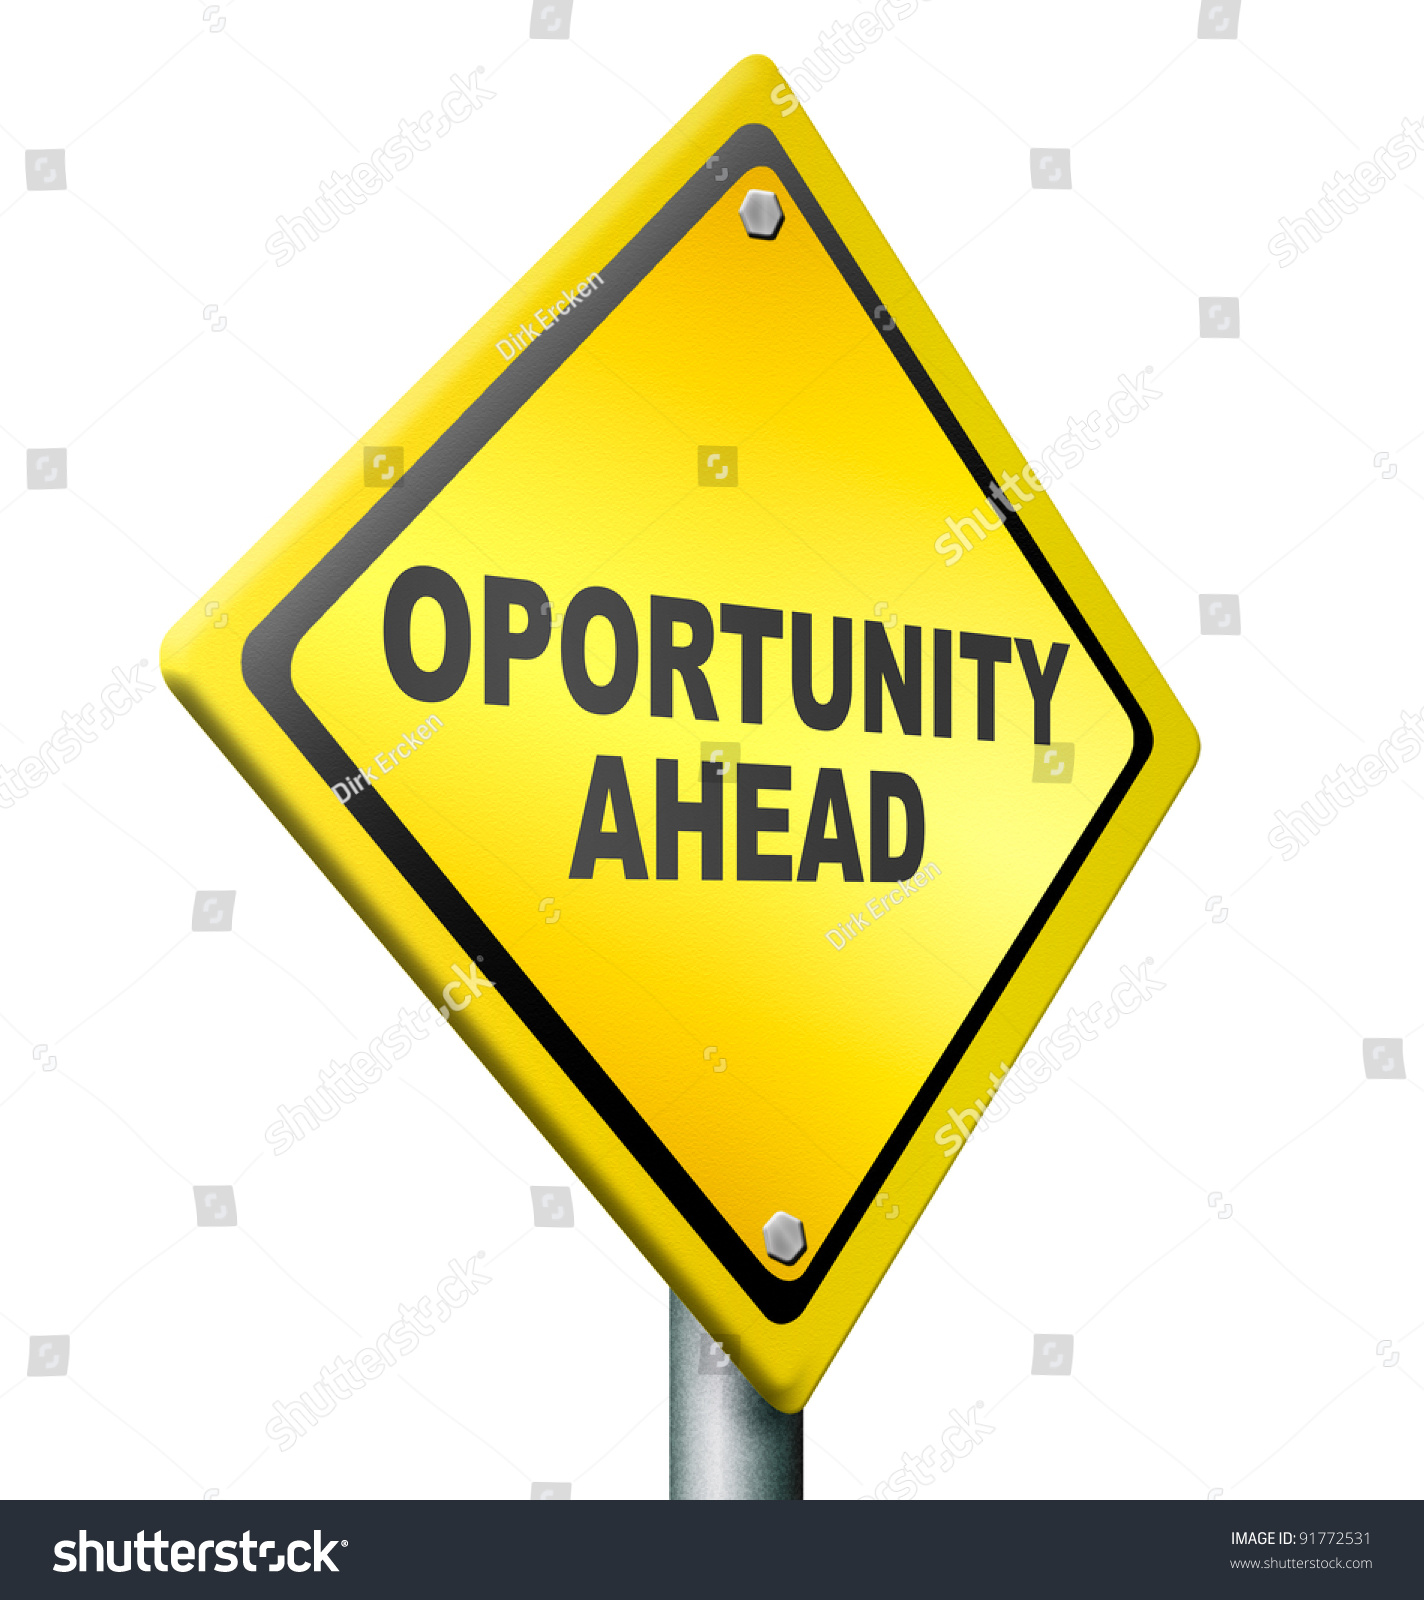 opportunity ahead best chances change better stock illustration opportunity ahead best chances to change for the better job improvement career move